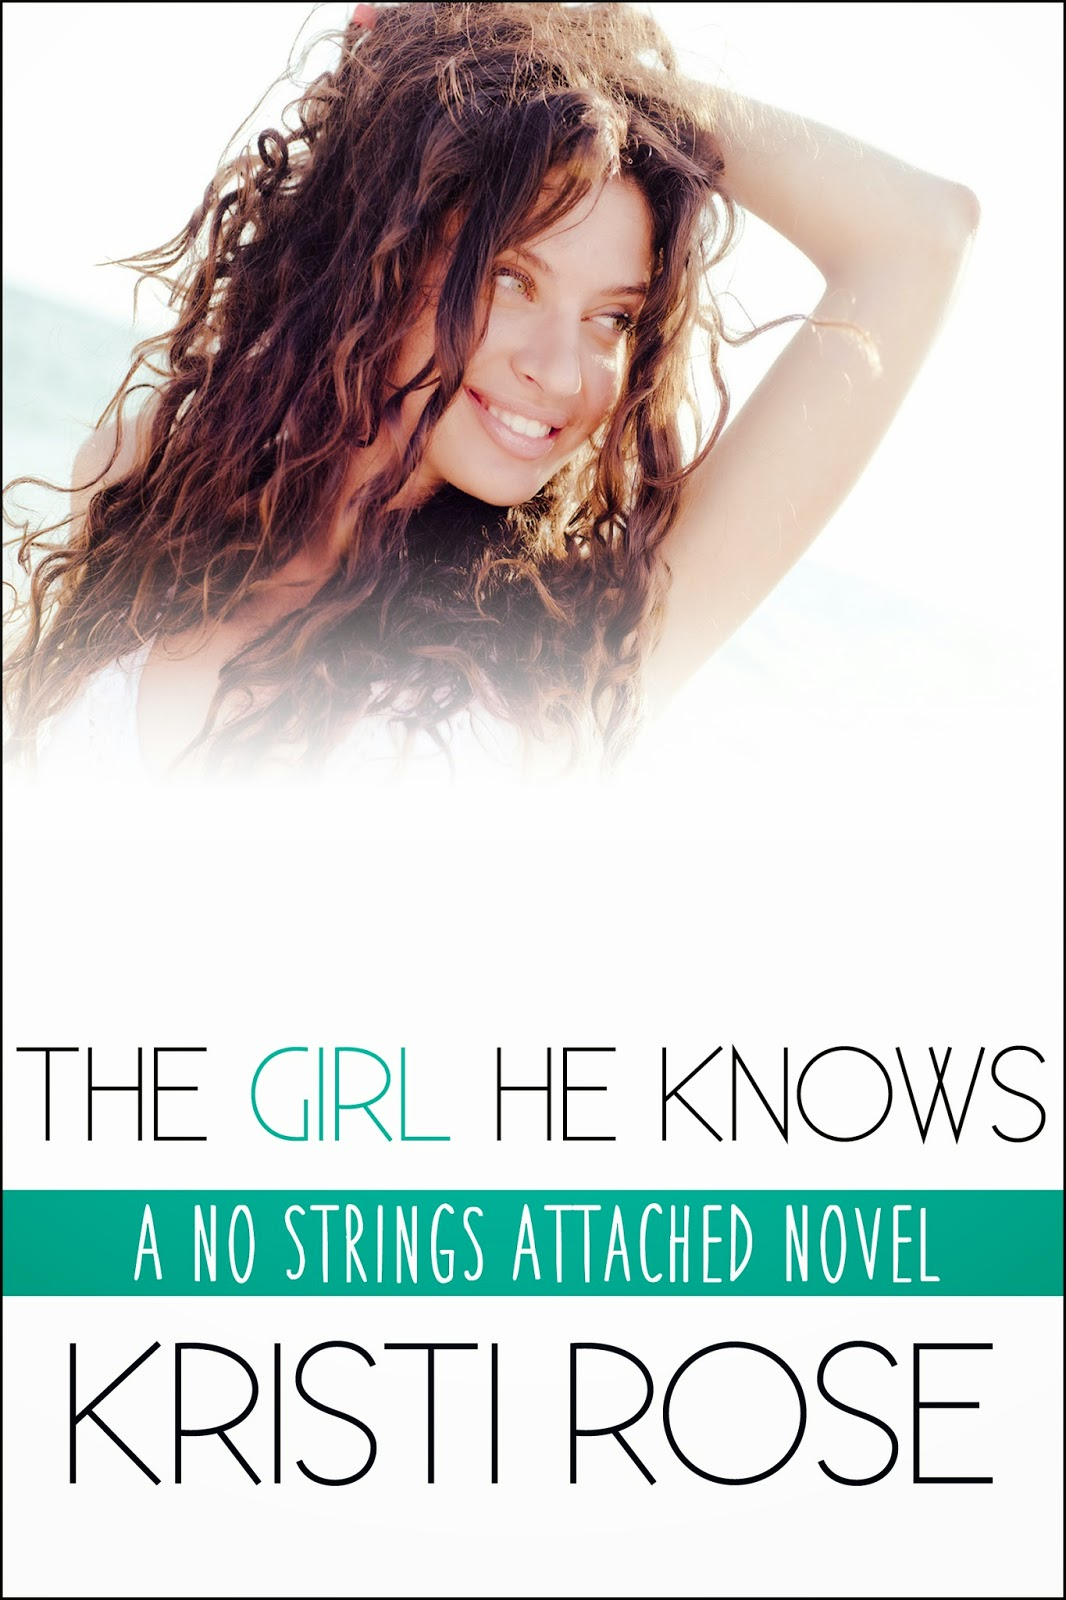 https://www.goodreads.com/book/show/22268970-the-girl-he-knows?ac=1